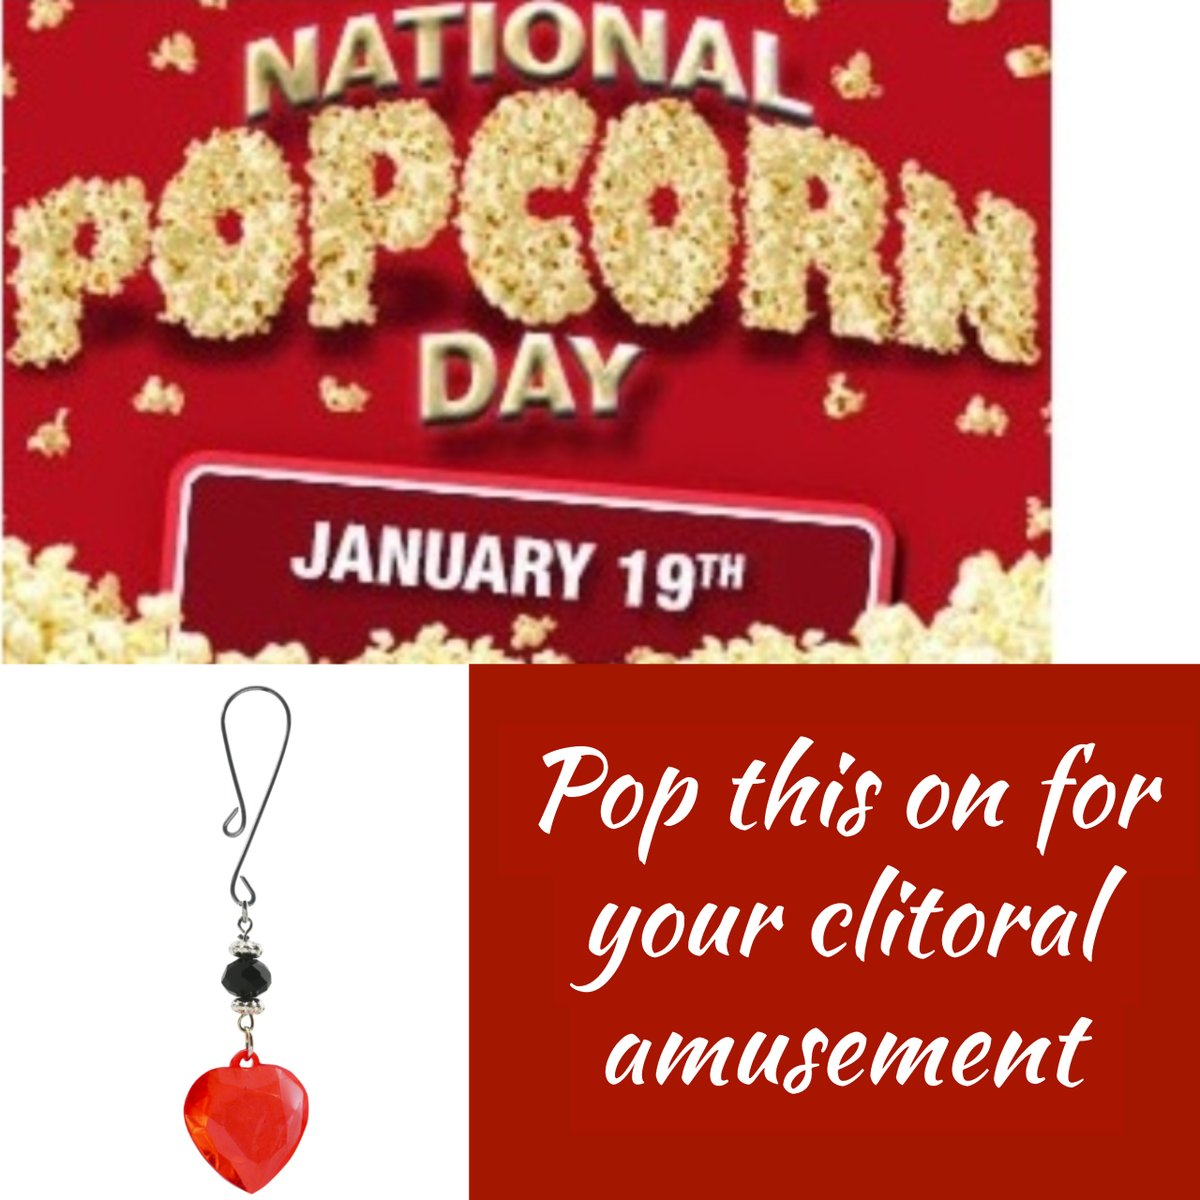 National Popcorn Day - Pop this on for you Clitoral Amusement   #phsinternational #NationalPopcornDay #clit #clitoral #vibrator #vibration #clitoralamusement #sex #retail #sales #love #life #beautiful #travel #fitness #happy #repost #igers